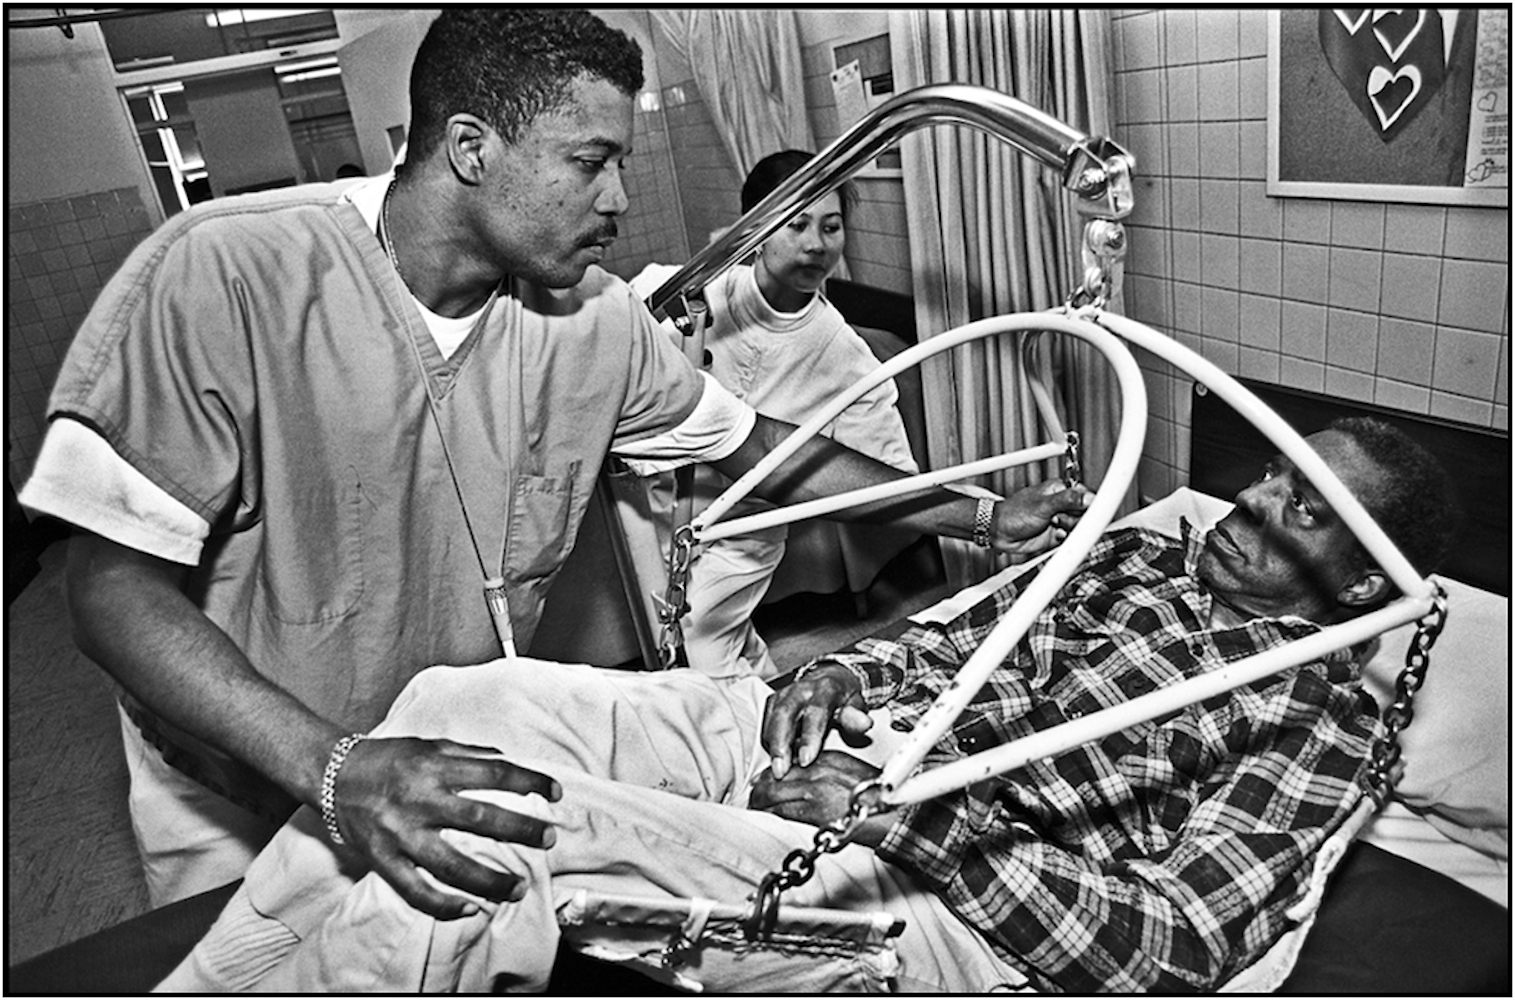 Nurse's Aides help long-term care patient at Goldwater Memorial Hospital, Roosevelt Island. 19--.